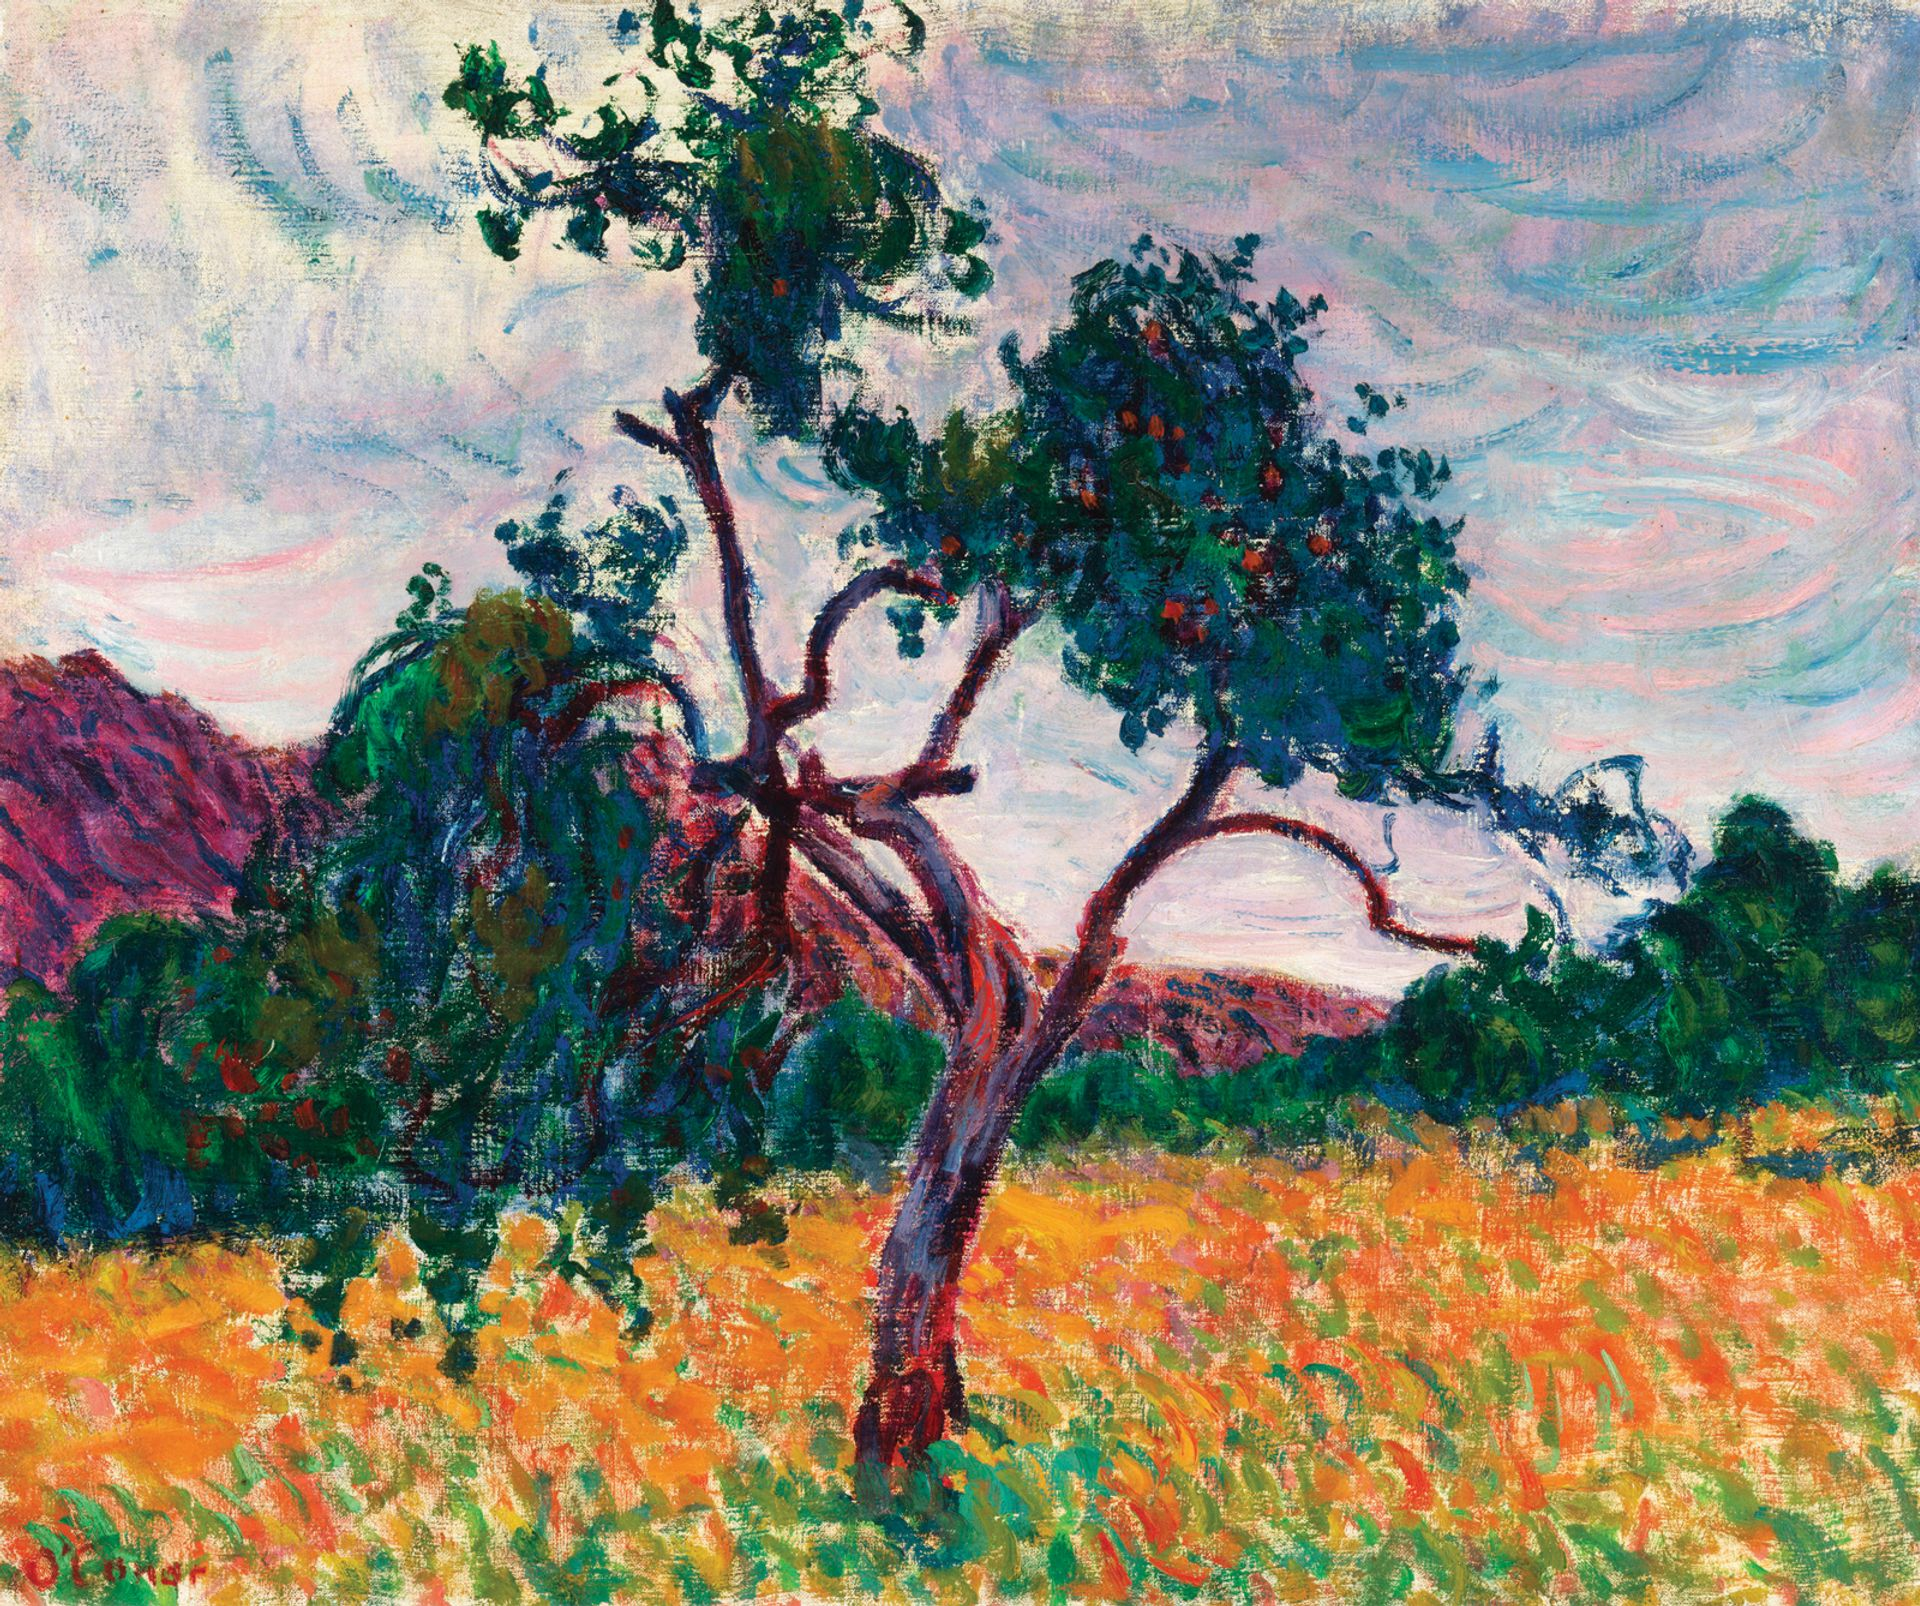 Roderic O'Conor's A Tree in a Field (around 1894) owes a great deal to Van Gogh's Provençal pictures Photo: Roy Hewson